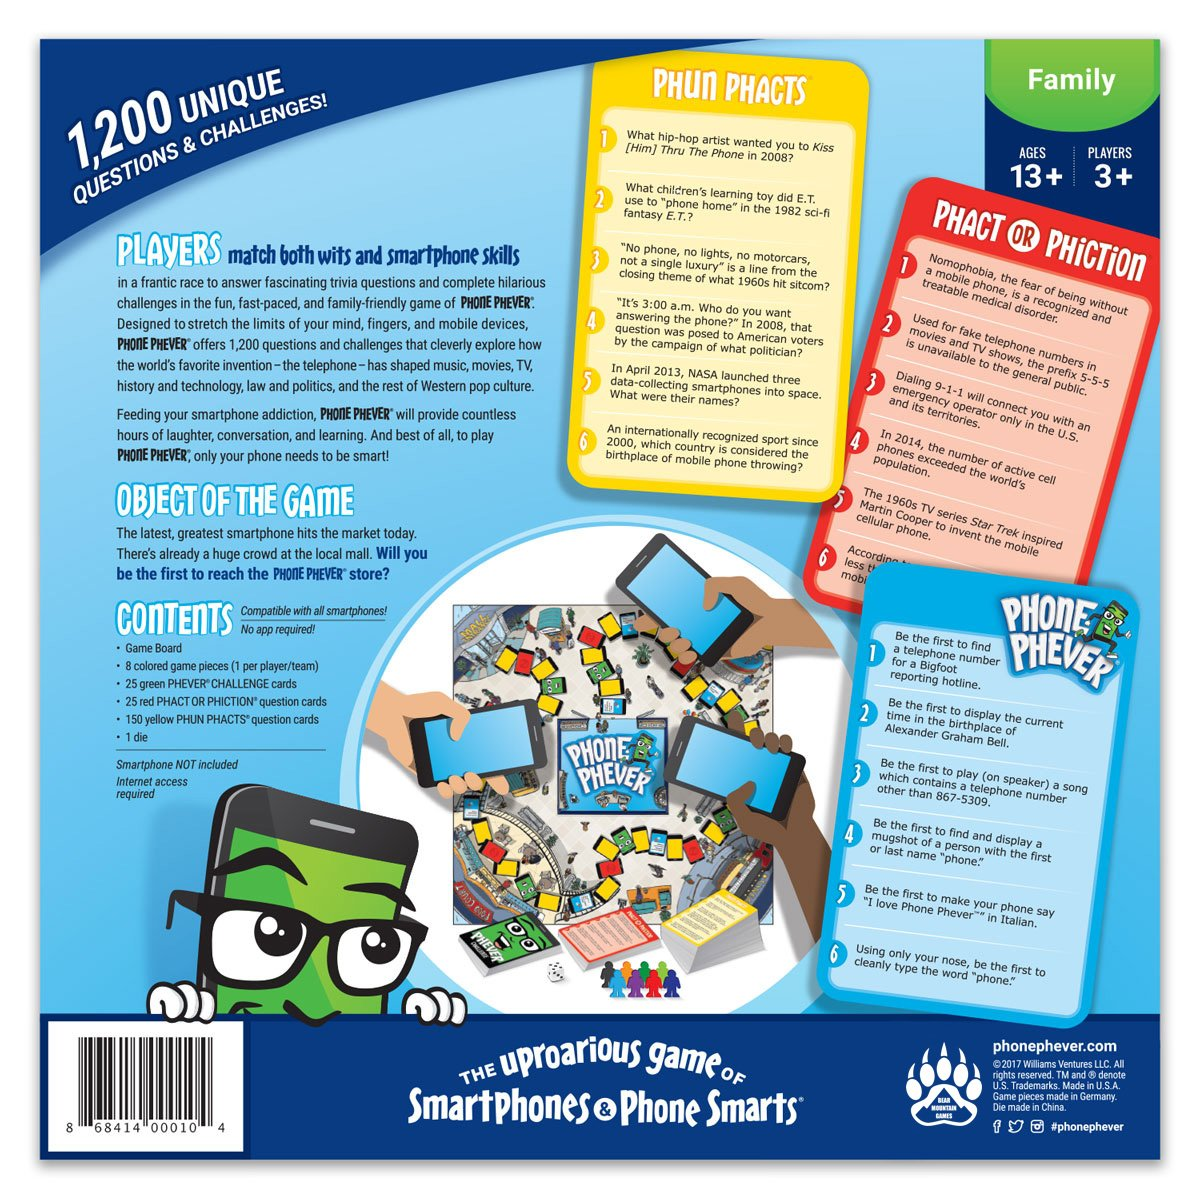 mamas on magic 107 9 at what age should kids cell how can i get a phone Amazon.com: Phone Phever Board Game - Best New Fun Fast-Paced  Family-Friendly Party Board Game - Itu0027s a Phonetastic Race to Answer  Fascinating Trivia ...